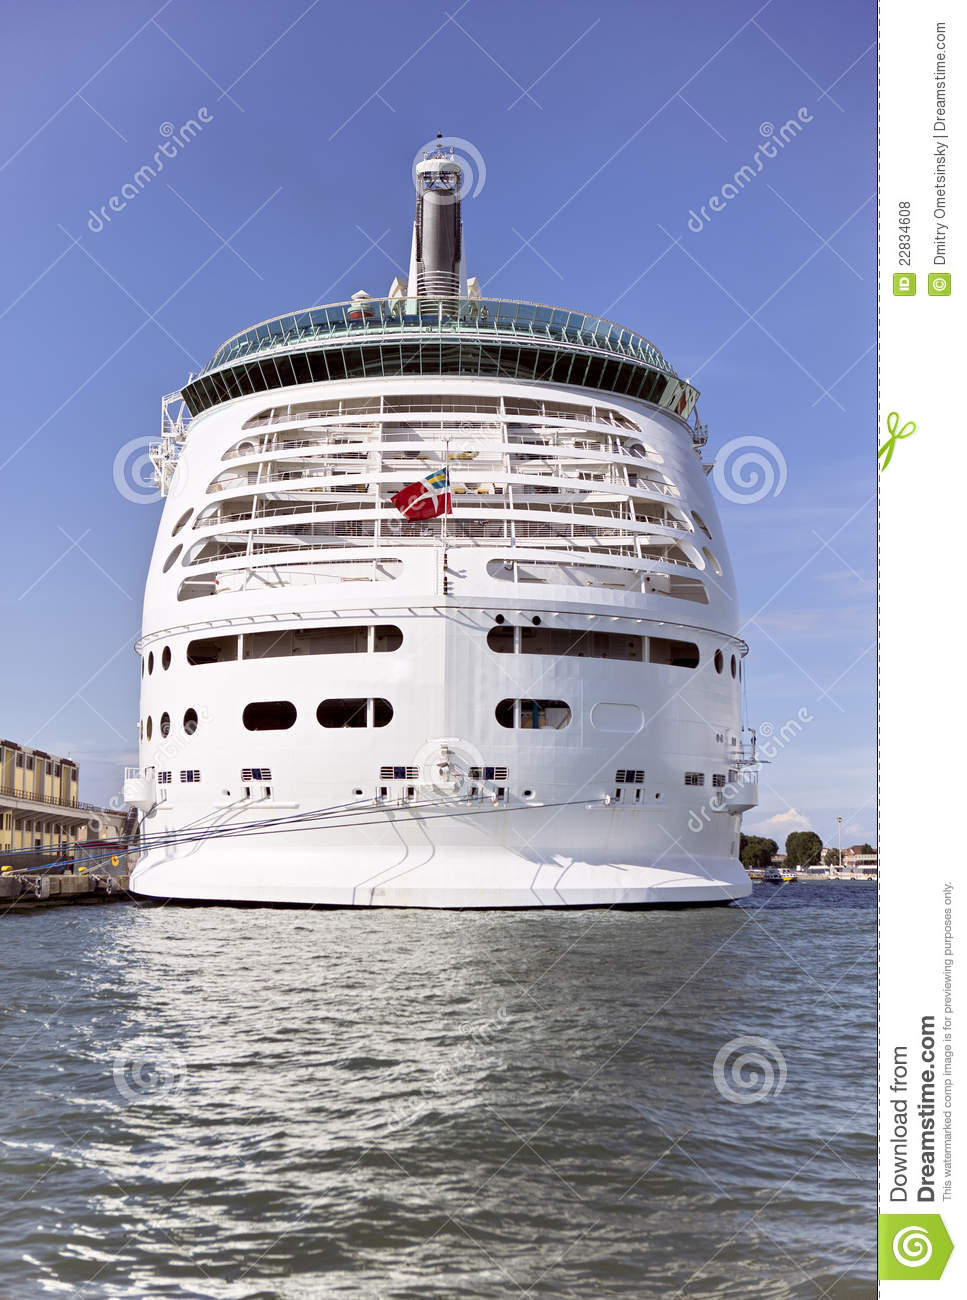 Stern Of A Cruise Ship Royalty Free Stock Photos  Image